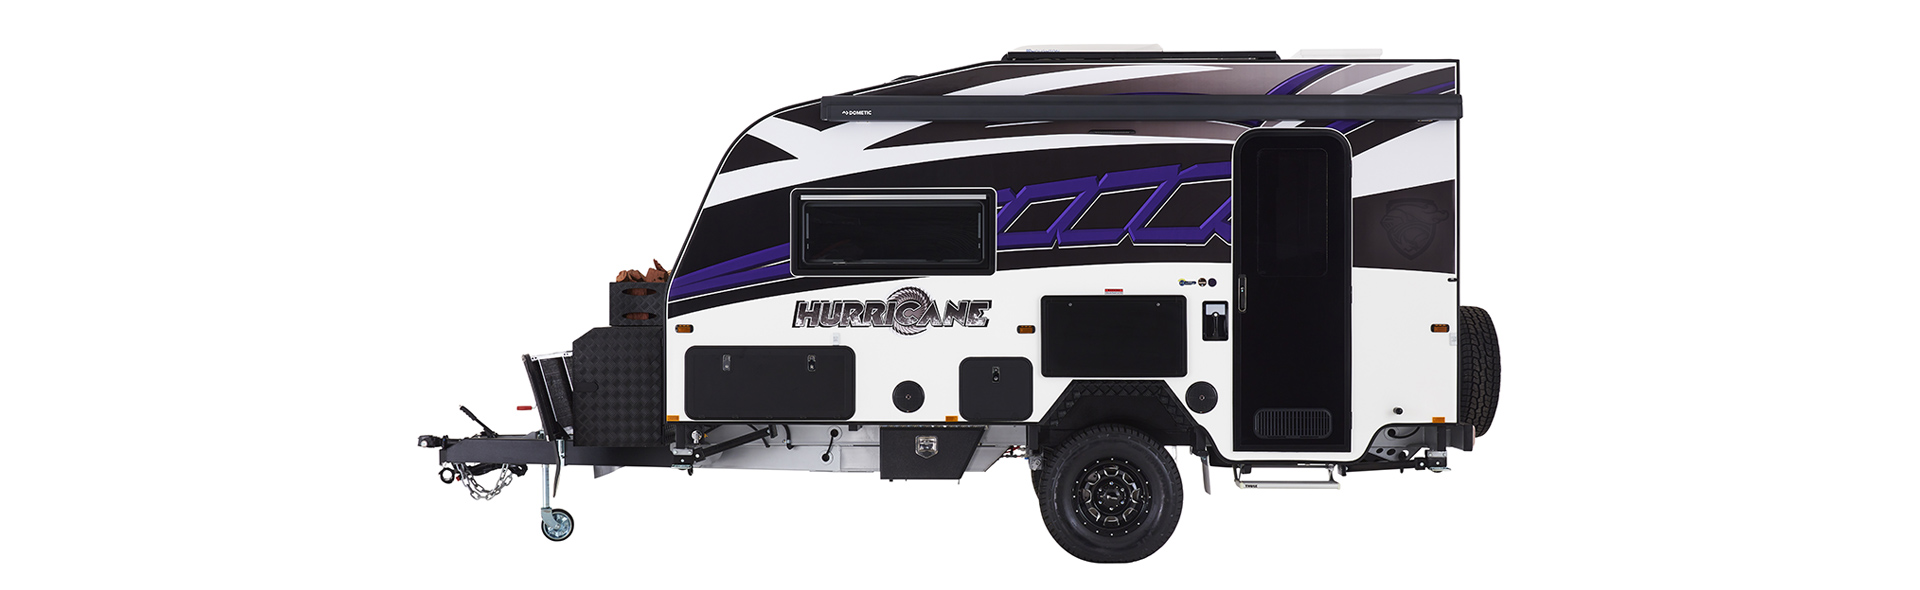 This is one awesome looking caravan packed with everything you'll ever need for an off the charts adventure.